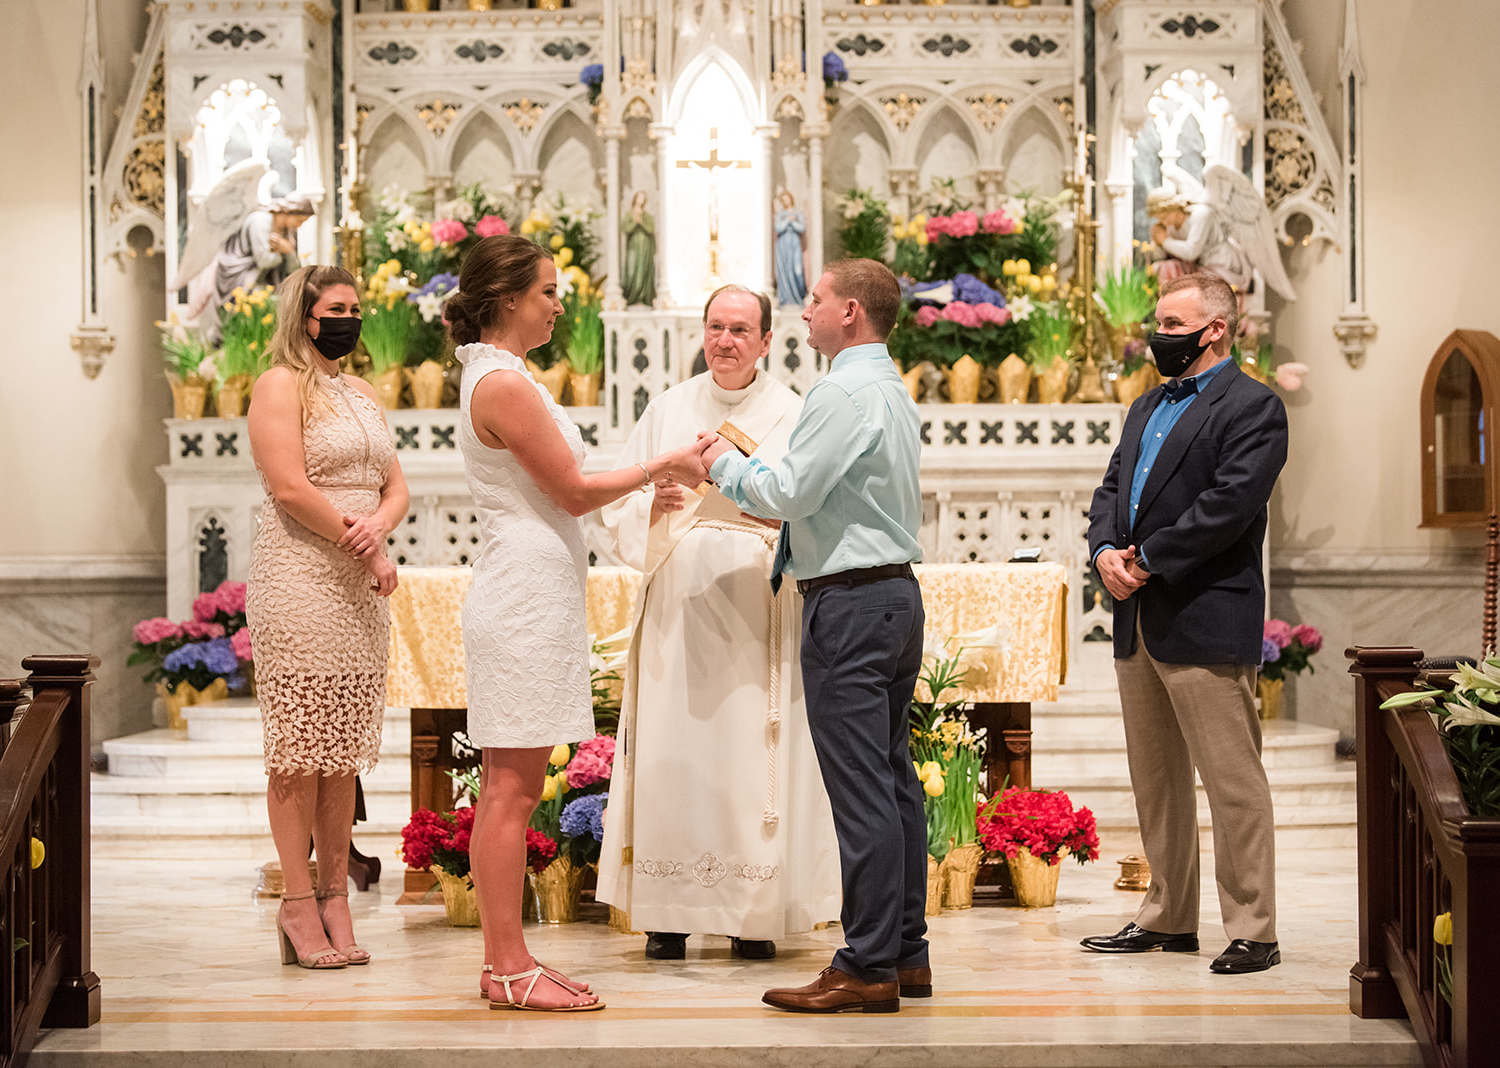 bride and groom standing in the catholic church for their wedding ceremony